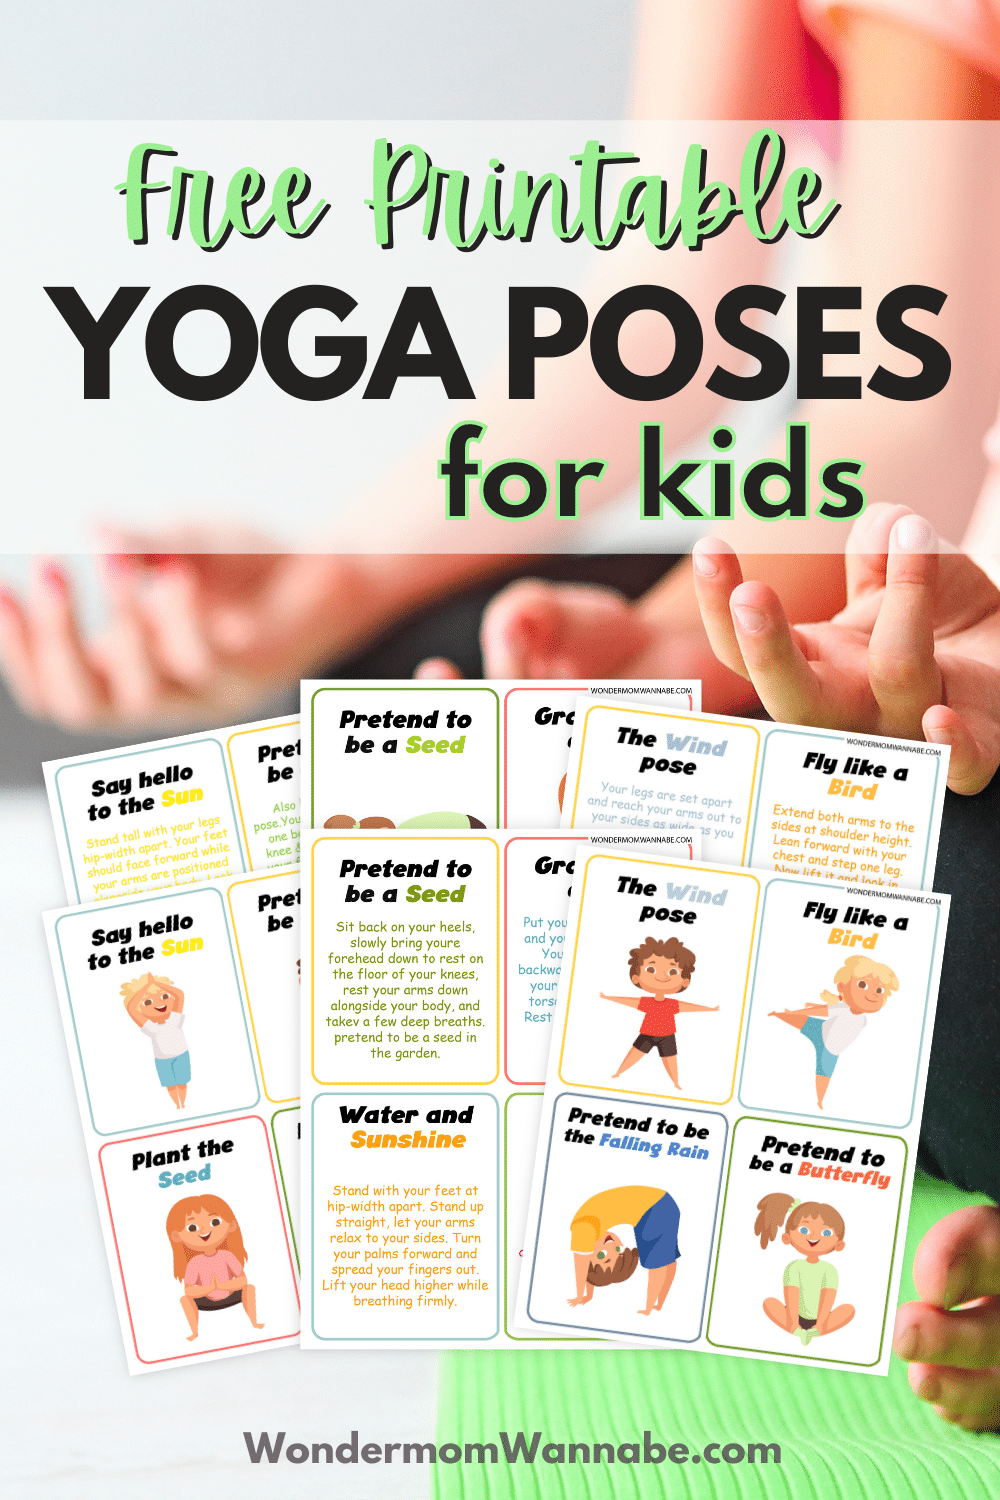 Use these free spring-themed printable yoga poses for kids to introduce your children to this healthy habit in a fun and easy way. #freeprintable #yogaposes #forkids #spring #healthykids via @wondermomwannab